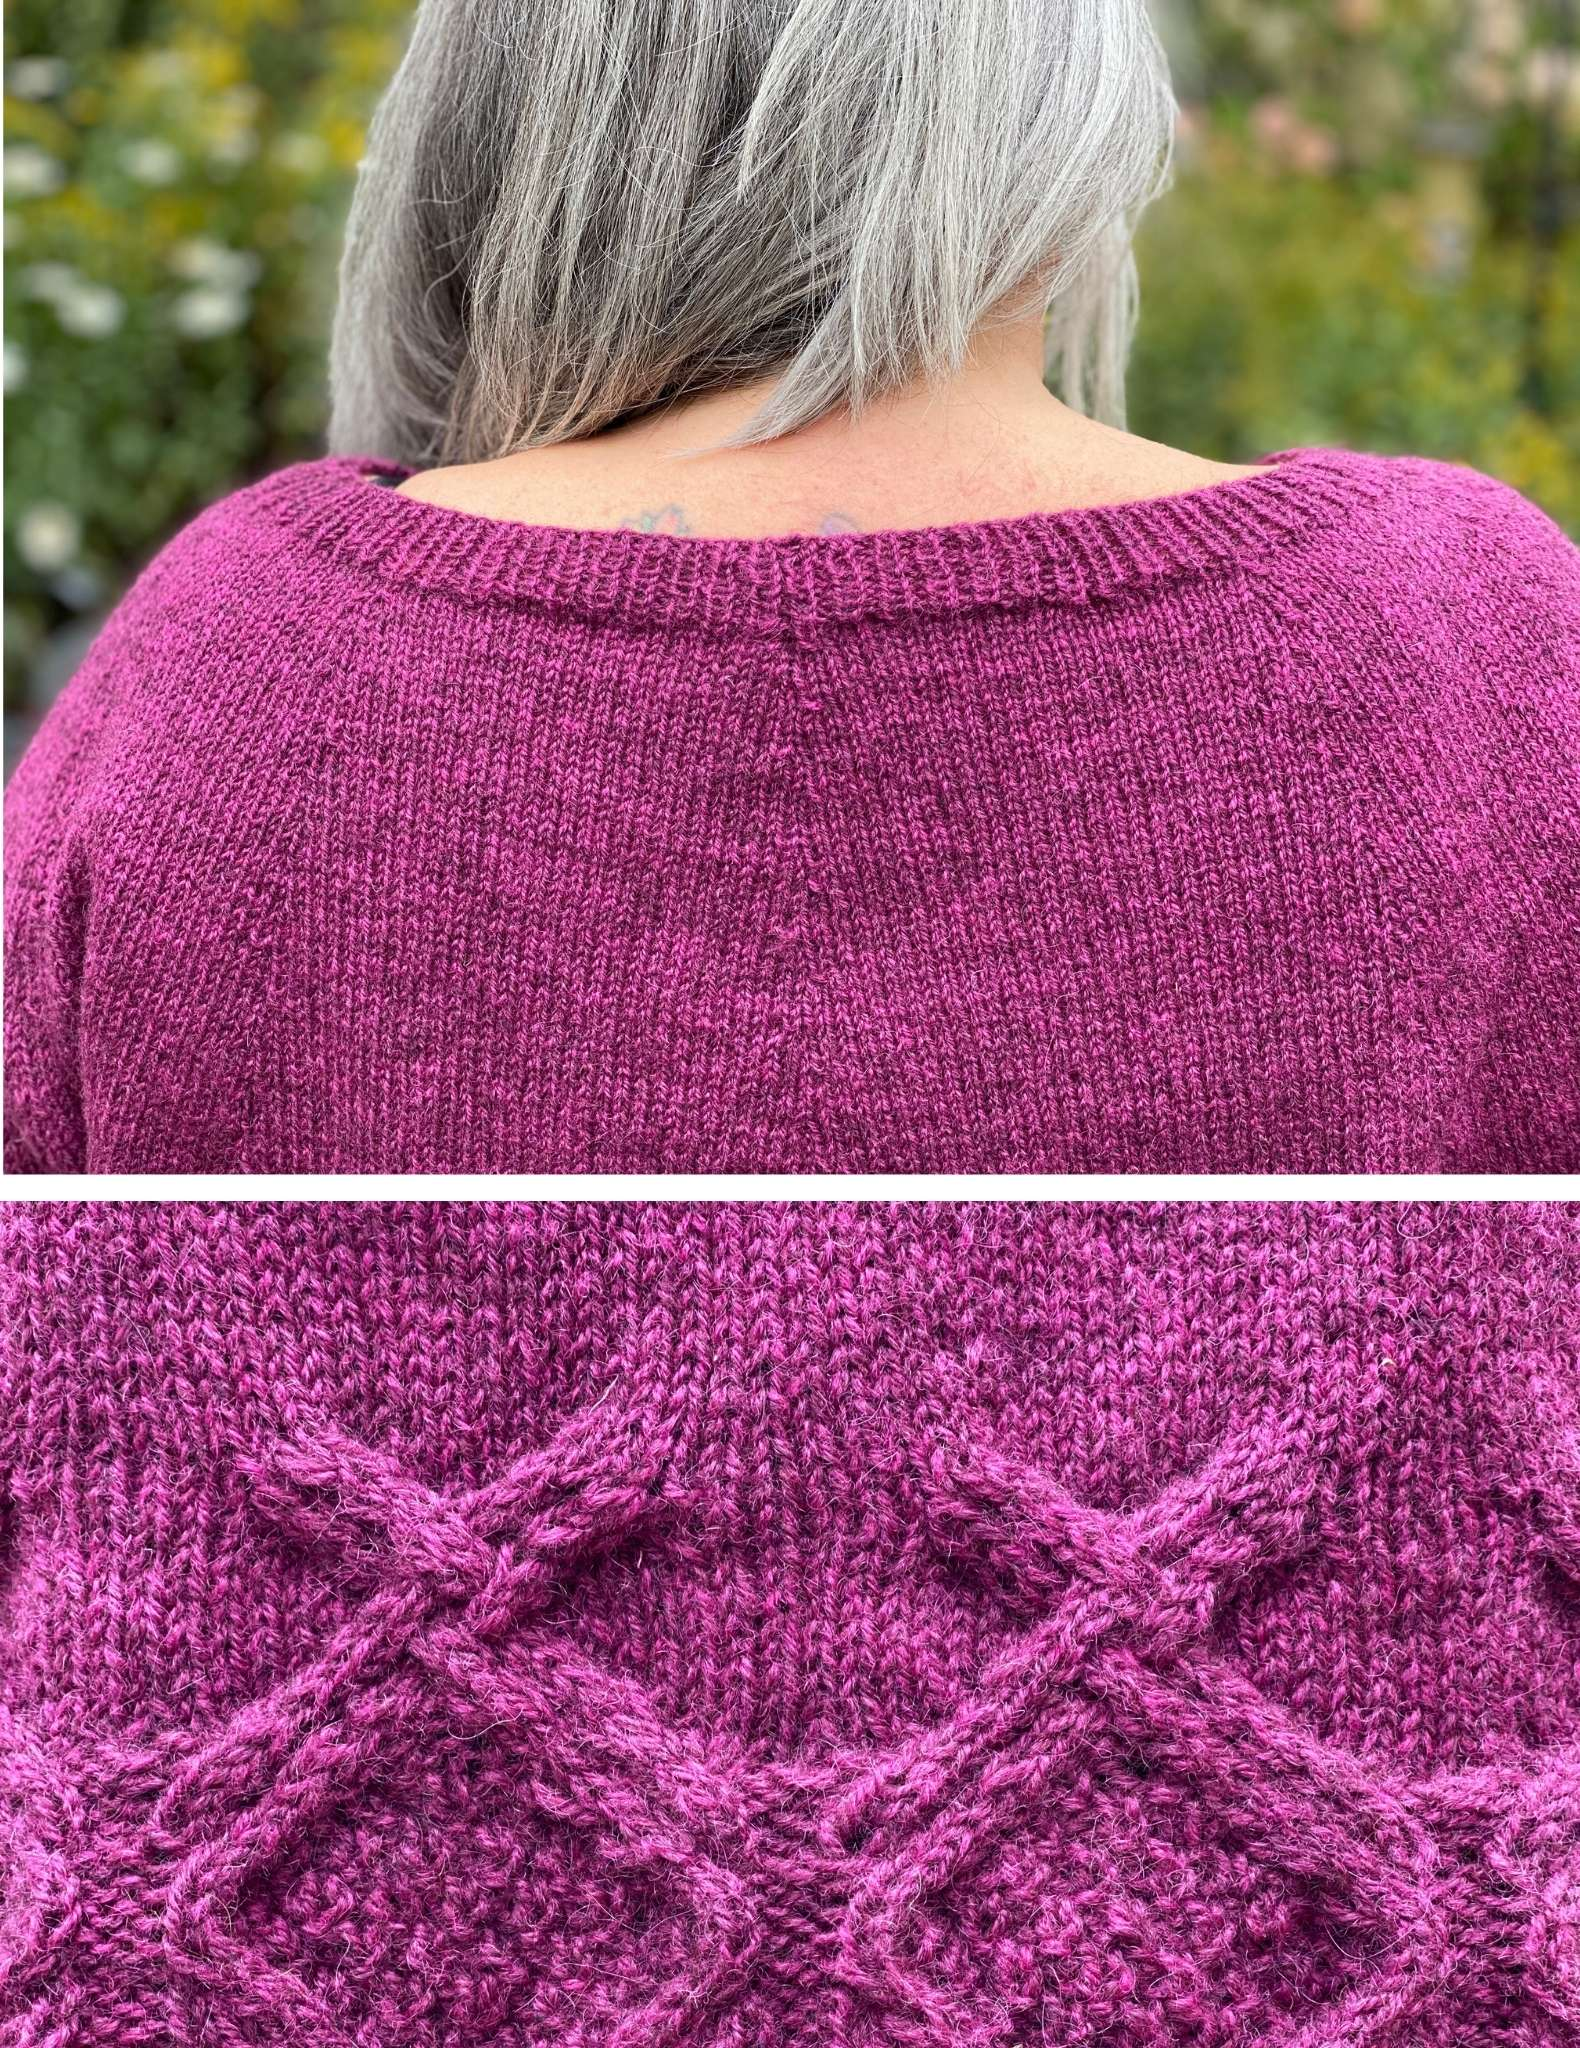 split image of the back of the neckline of a pink sweater, and a close up of a cabled hem